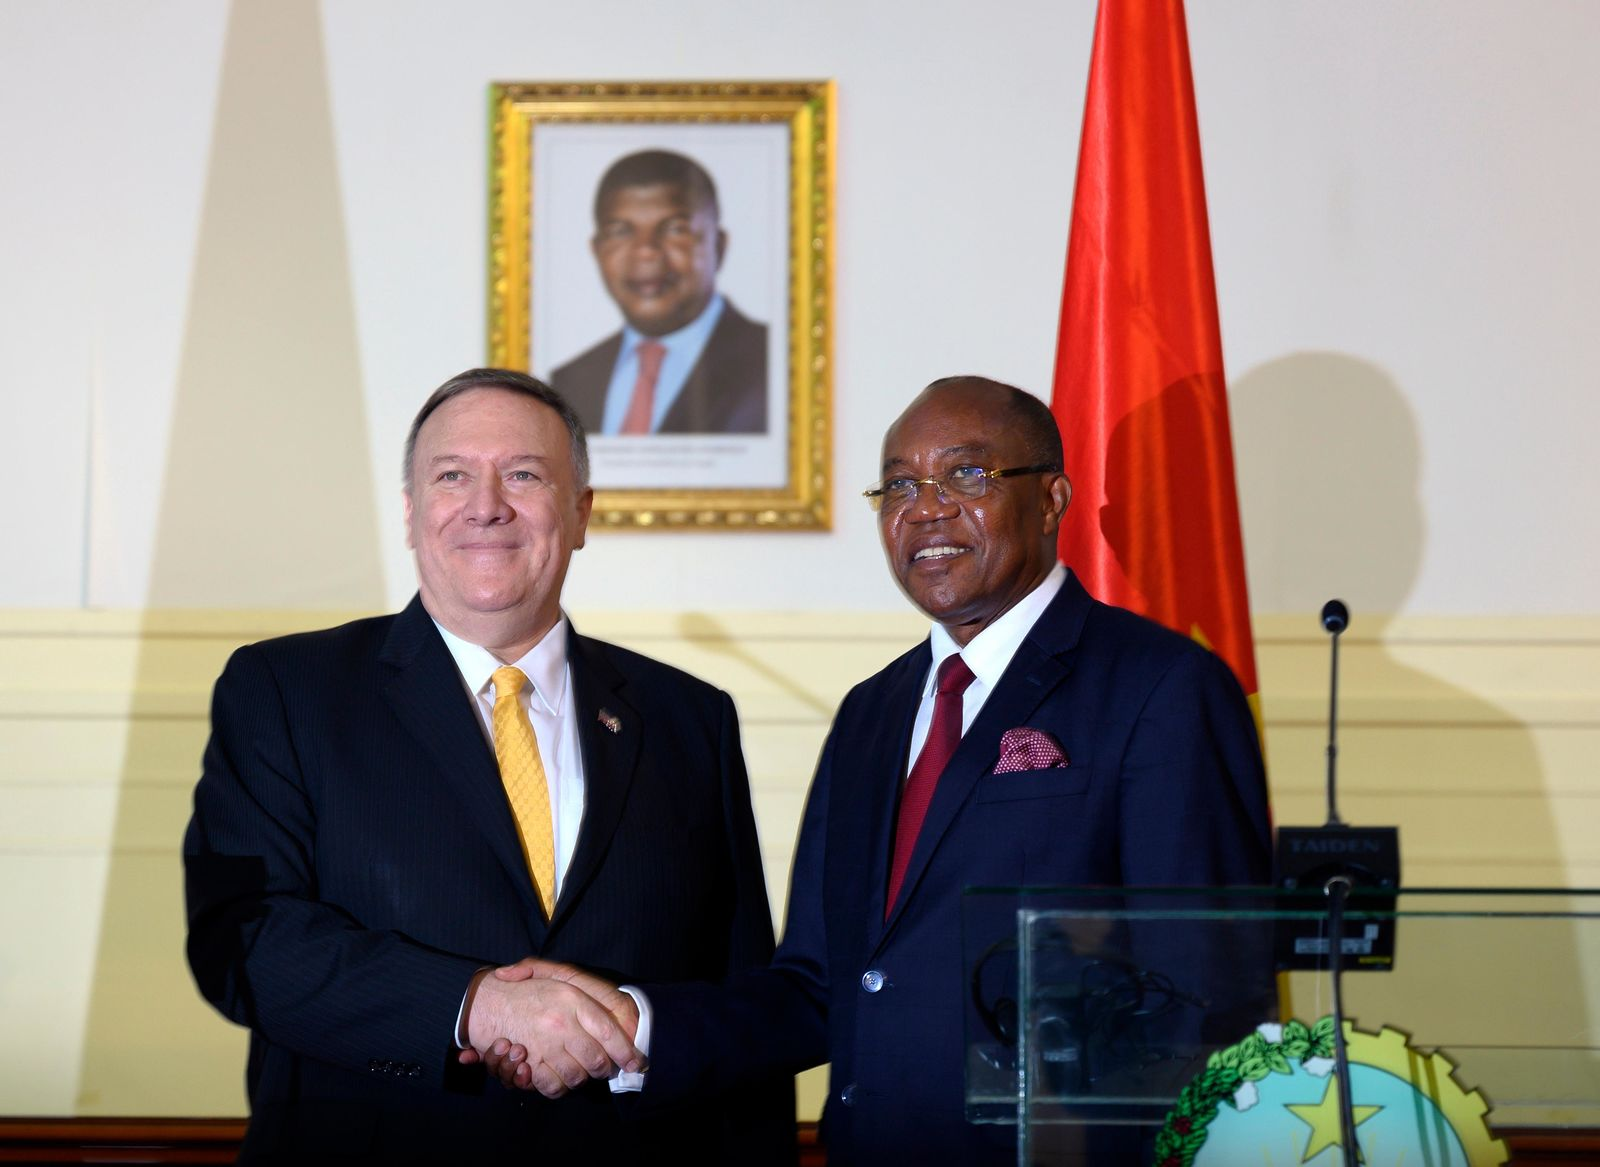 US Secretary of State, Mike Pompeo, left, and Angola Foreign Minister, Manuel Domingos Augusto hold a press conference in Luanda, Angola, Monday Feb. 17, 2020.{ } (Andrew Caballero-Reynolds/Pool via AP)